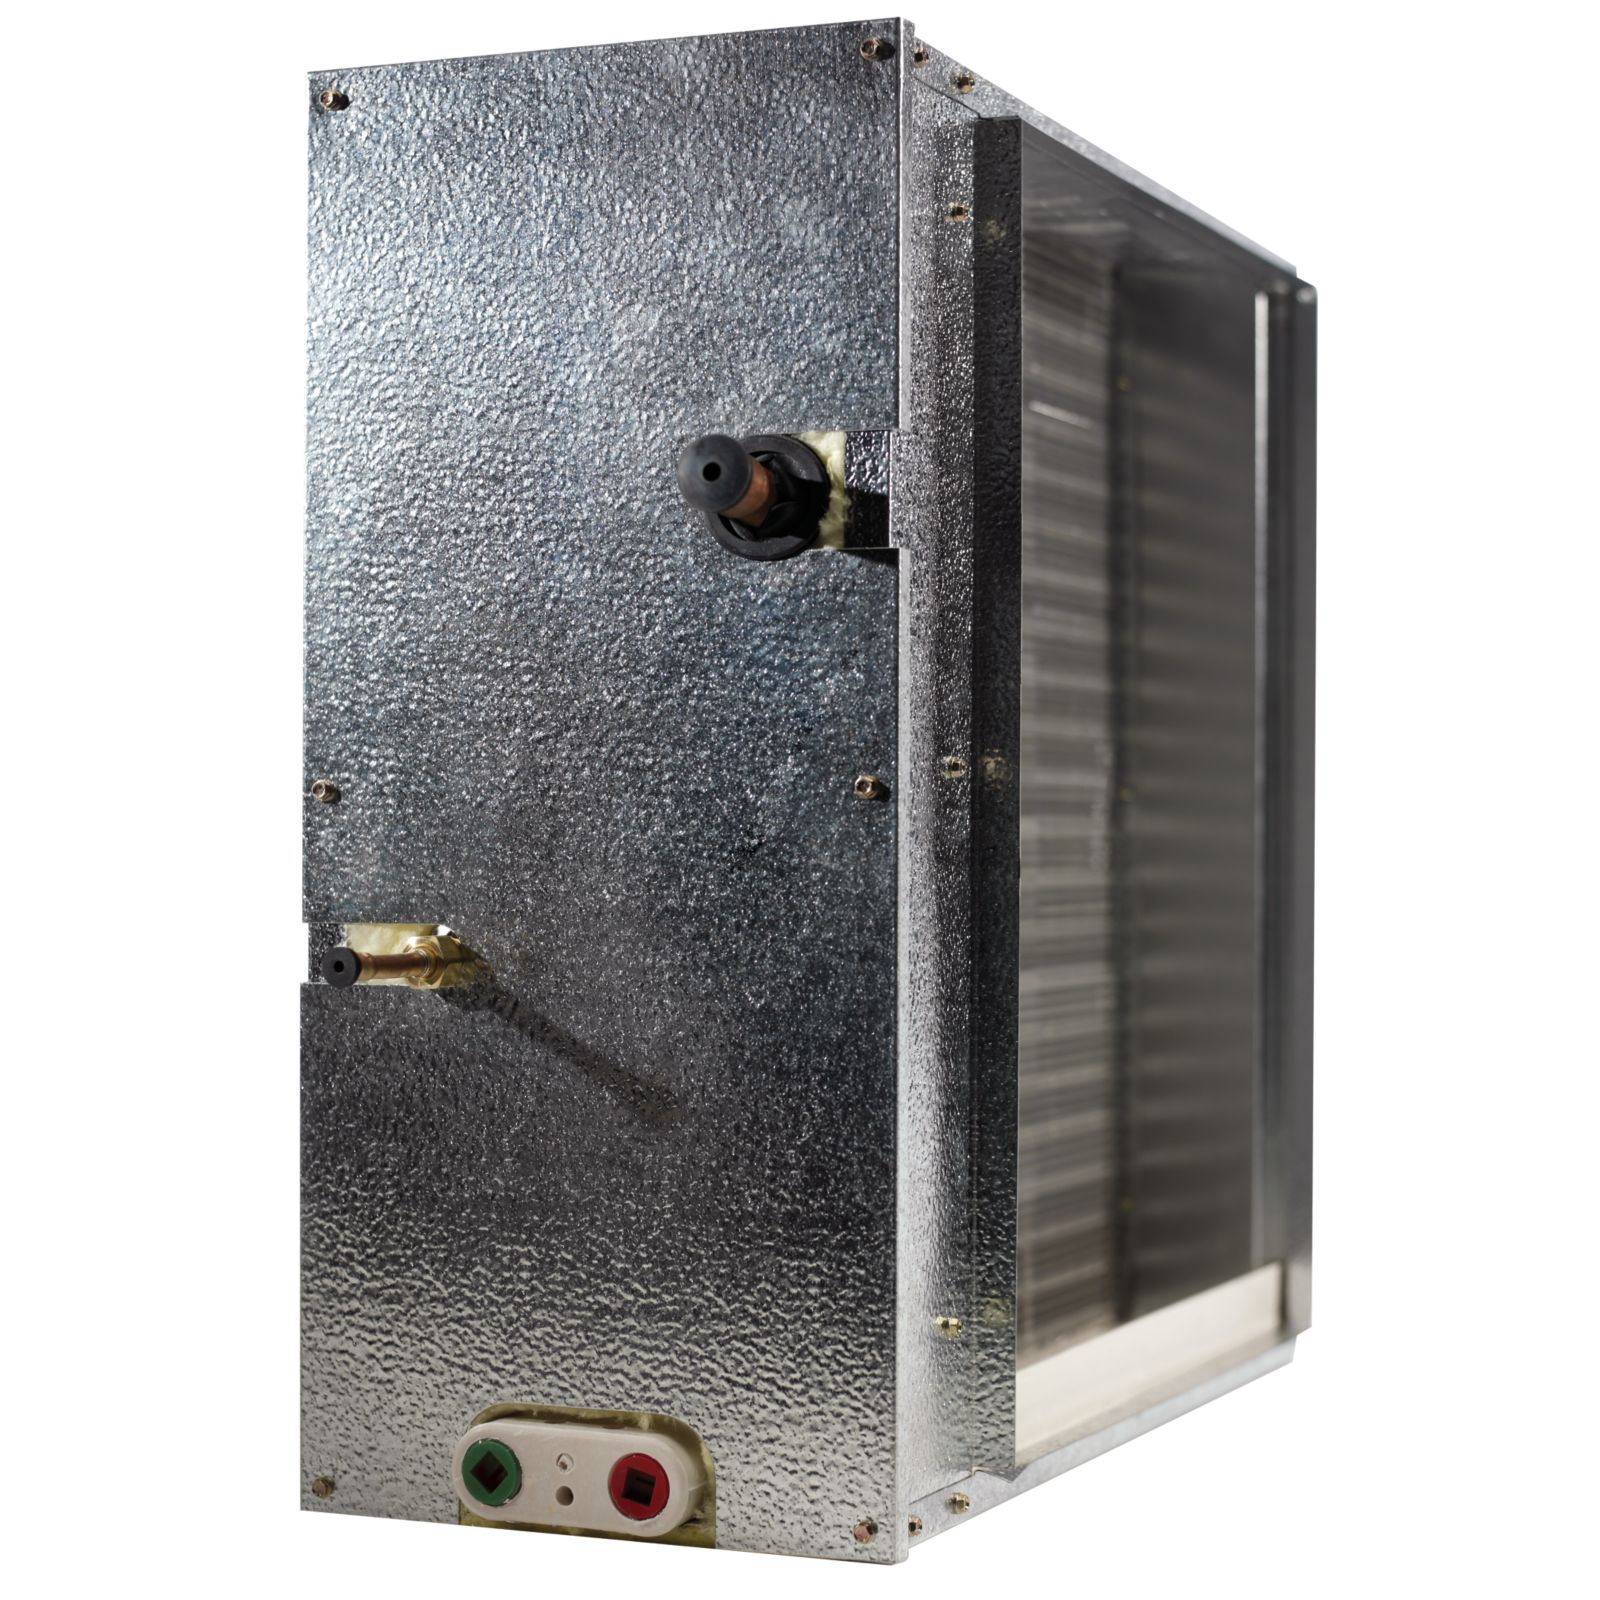 "ADP HH59636A265A2102AP - HH Series Indoor Cased Evaporator Coil 3 Ton Copper Horizontal R410A AC TXV, 26 5/8"" W Cabinet"